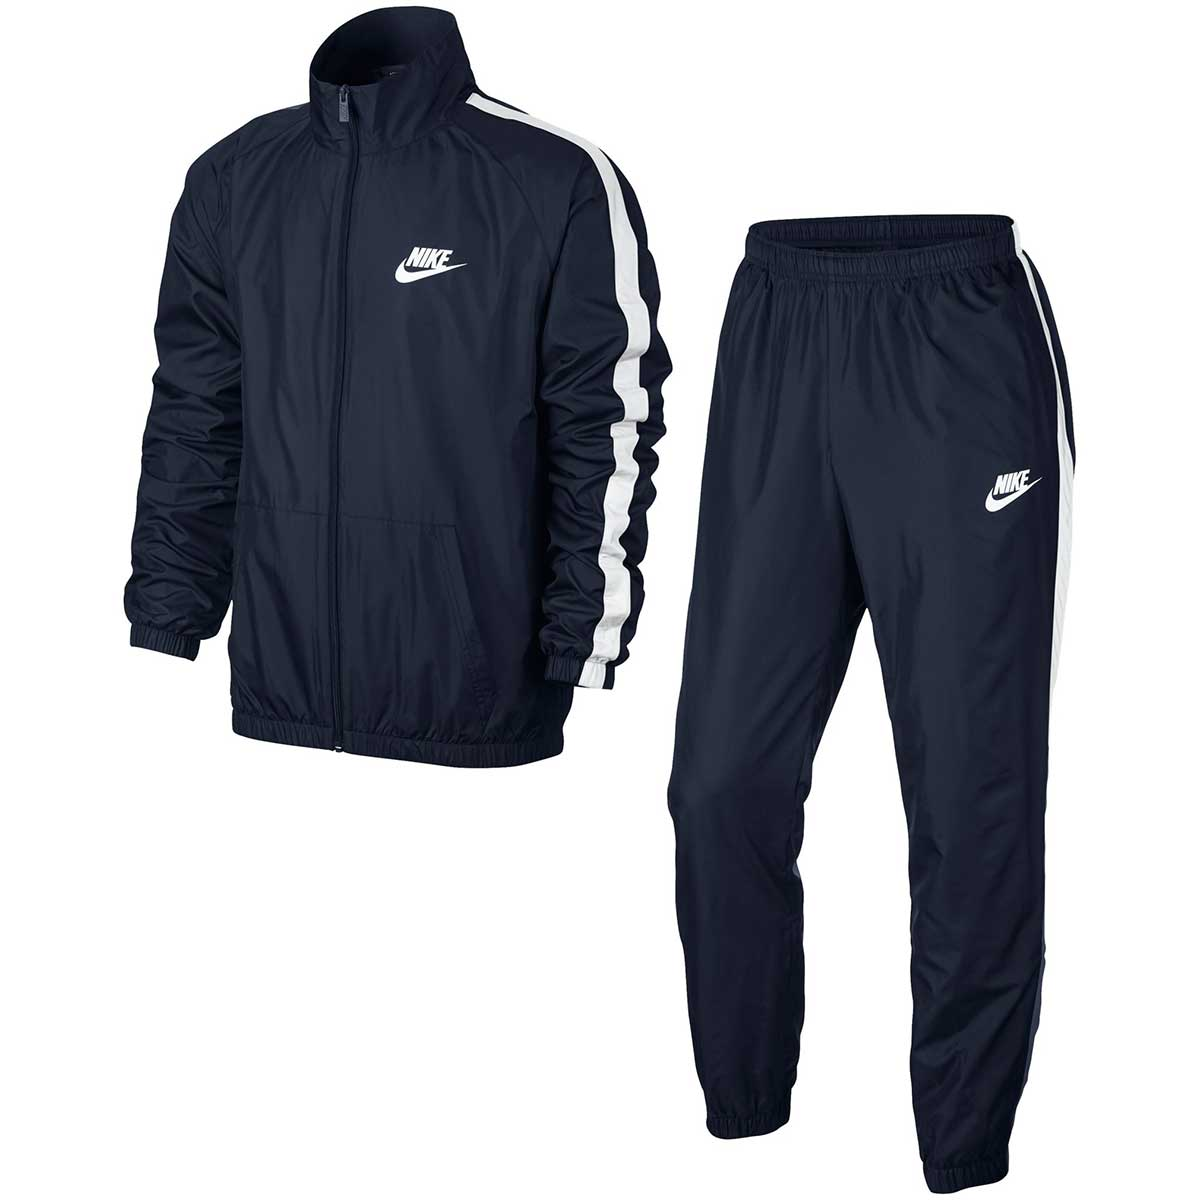 Cheap Nike Clothes Online